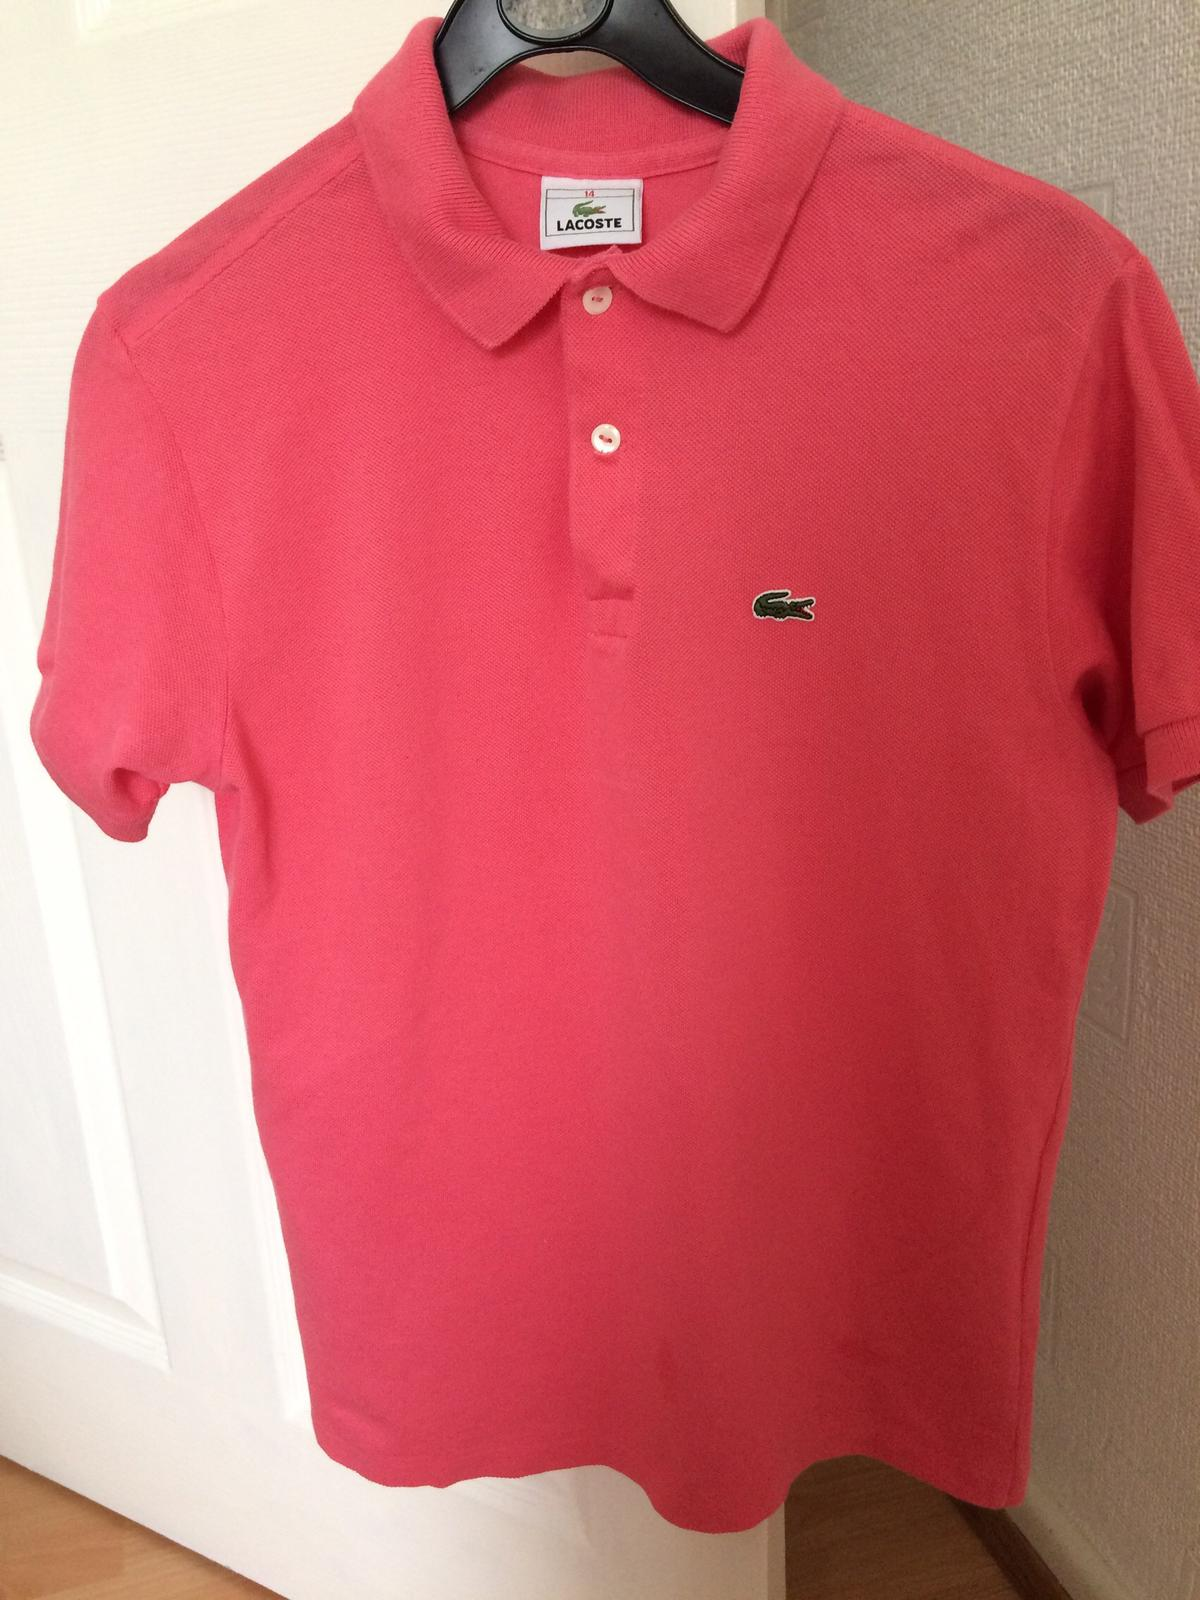 29b0728a1 Pink Lacoste polo shirt in NG7 Nottingham for £10.00 for sale - Shpock